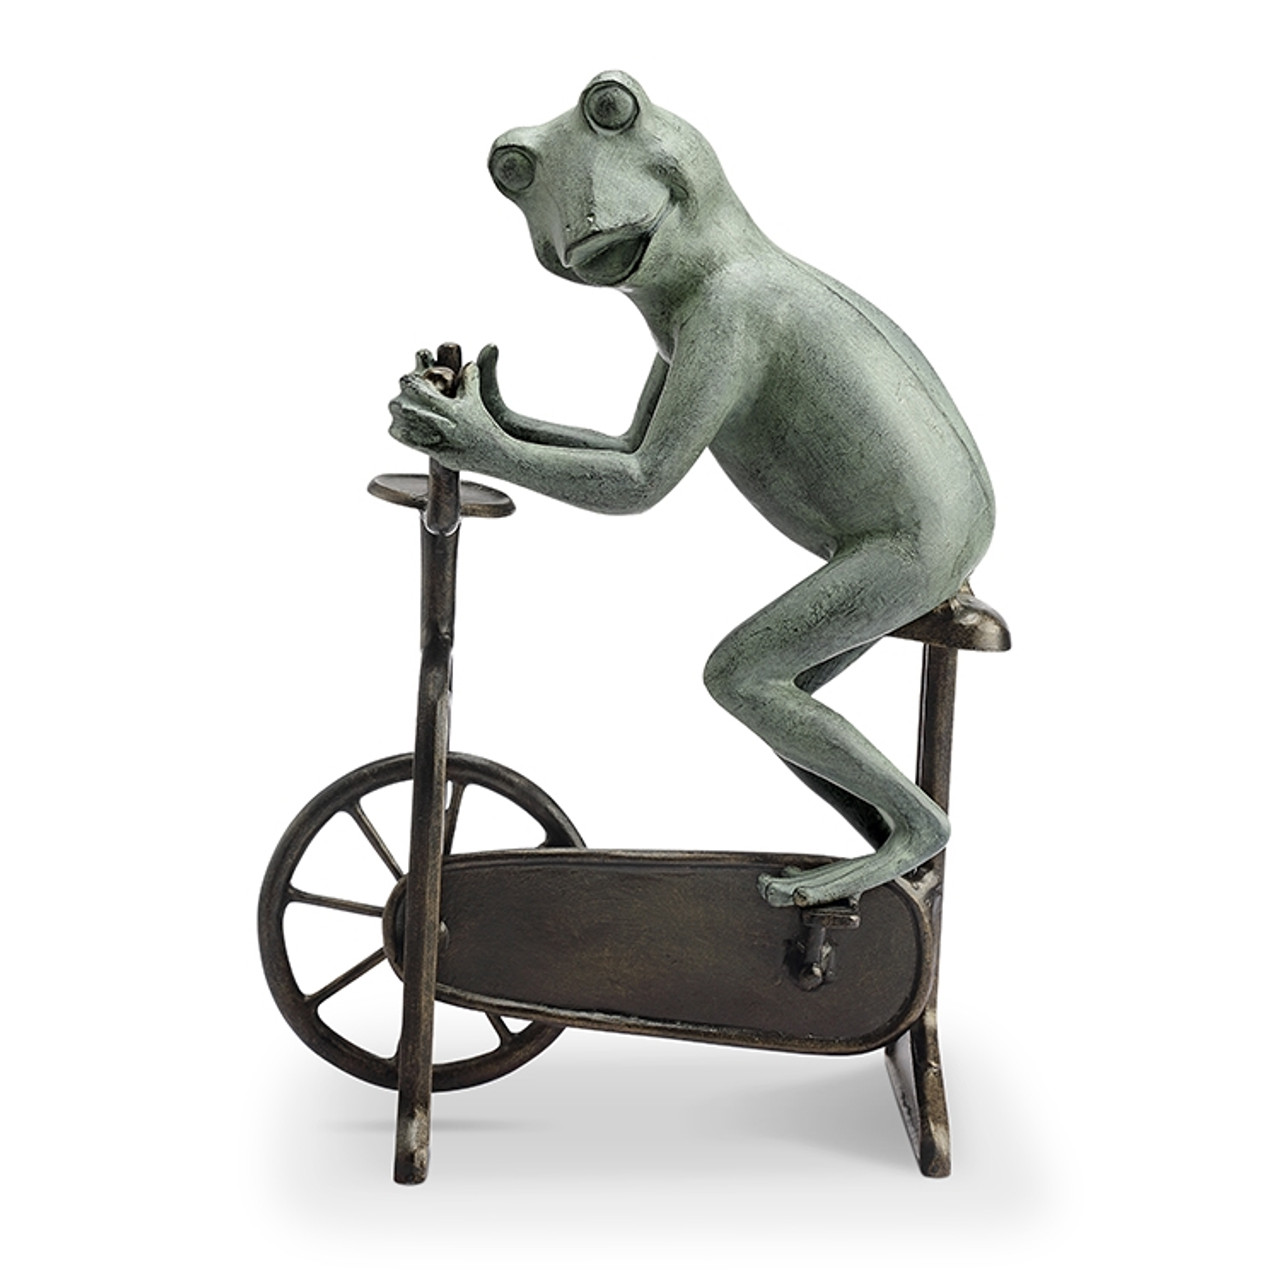 Workout Frog on Bicycle Garden Sculpture